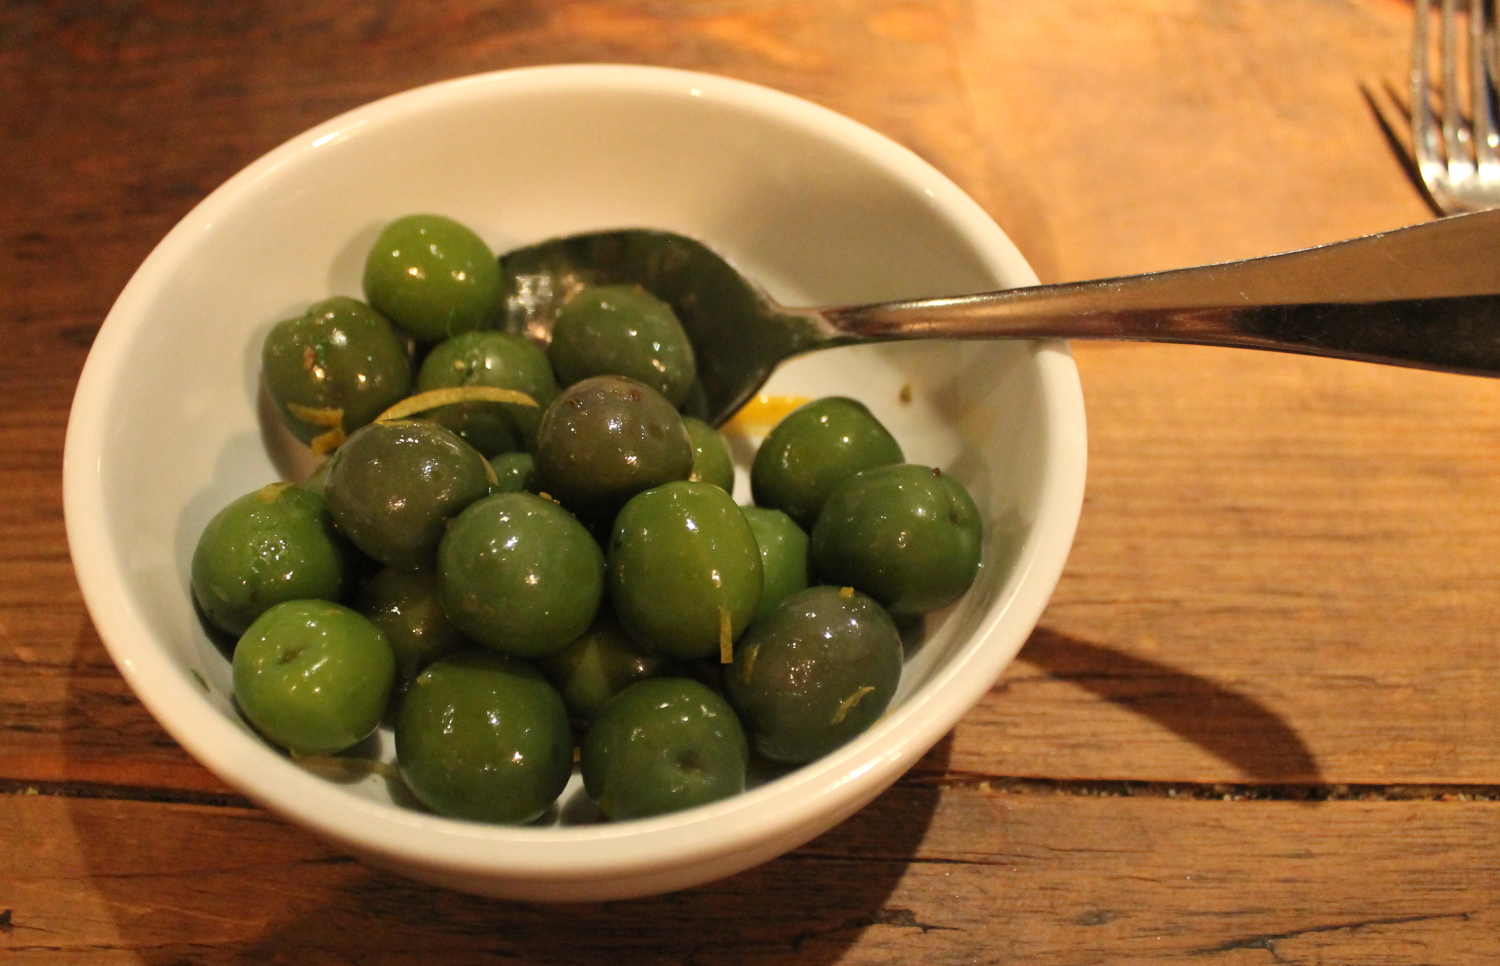 Marinated olives with chilies, parsley, and orange